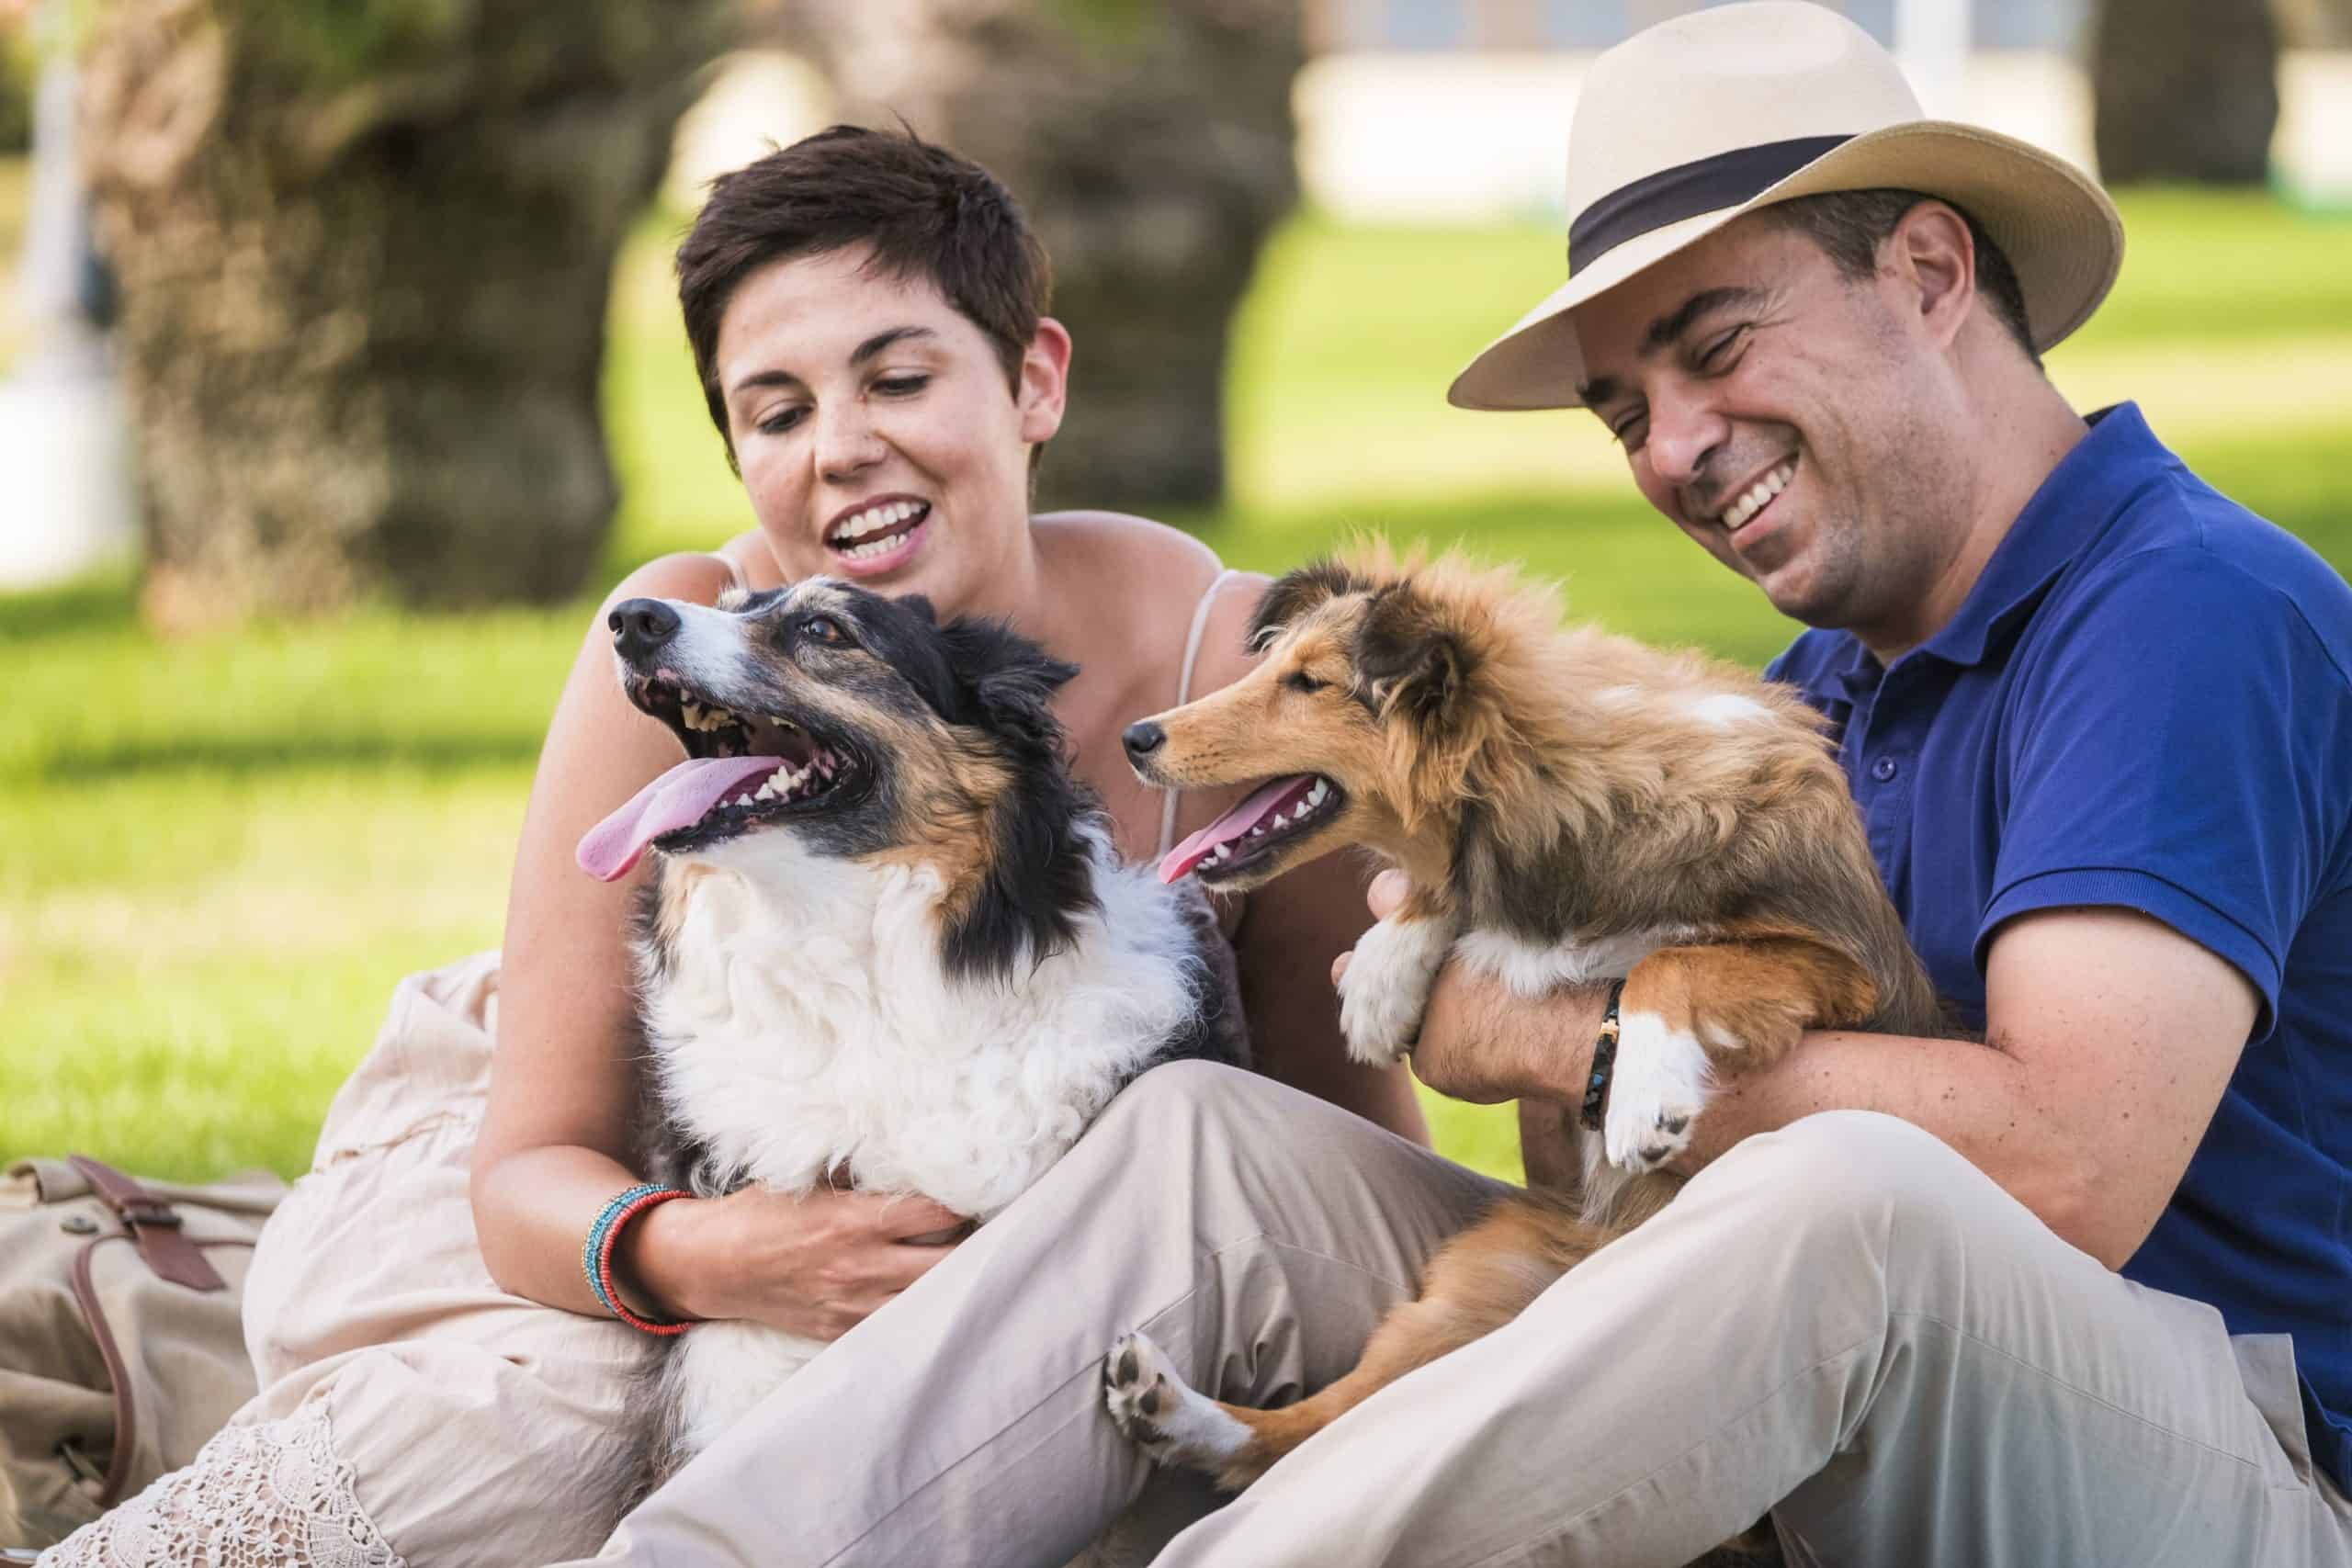 """Man and woman meet at park with Australian shepherd and Shetland sheepdog. Survey shows pet parents say their dog has a """"better social life"""" than they do. More than half say their dog has more friends."""